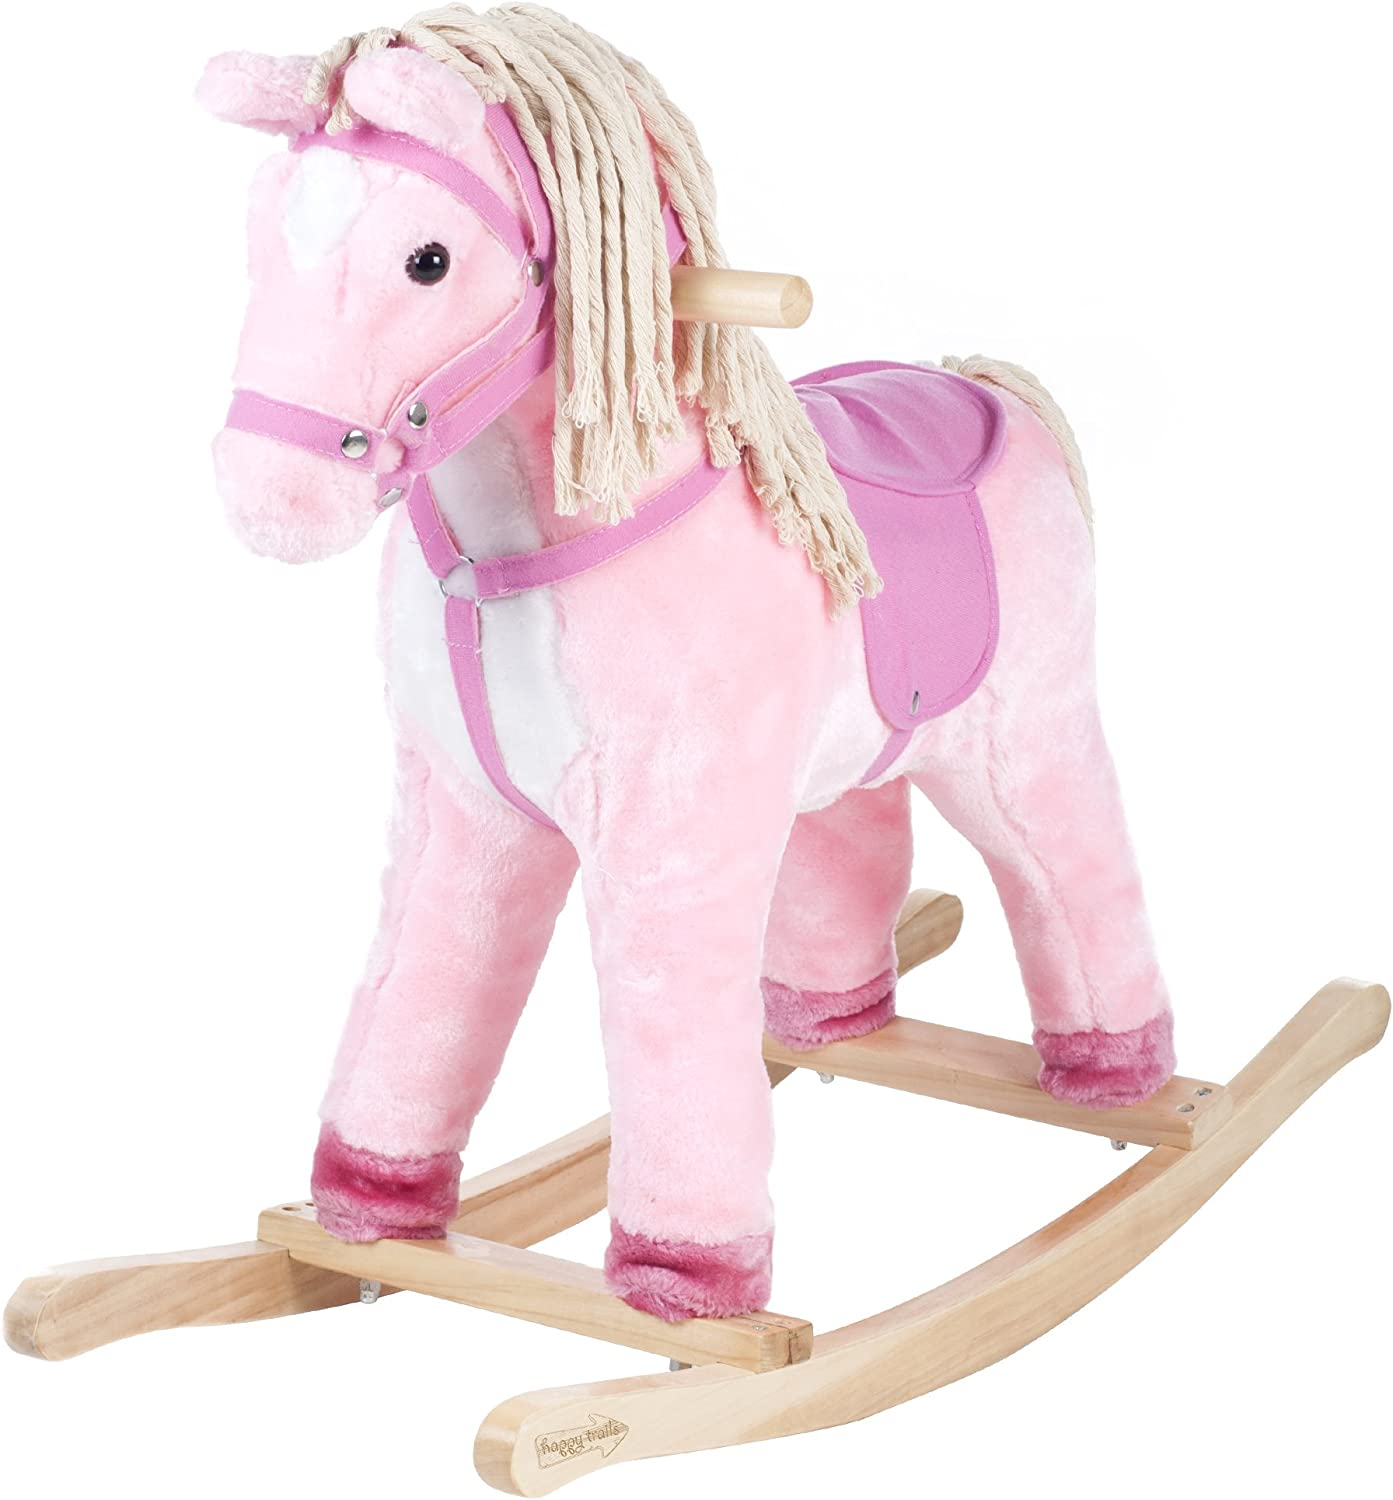 Happy Trails Patty The Pony Ride On with Cotton Hair Tail, Pink